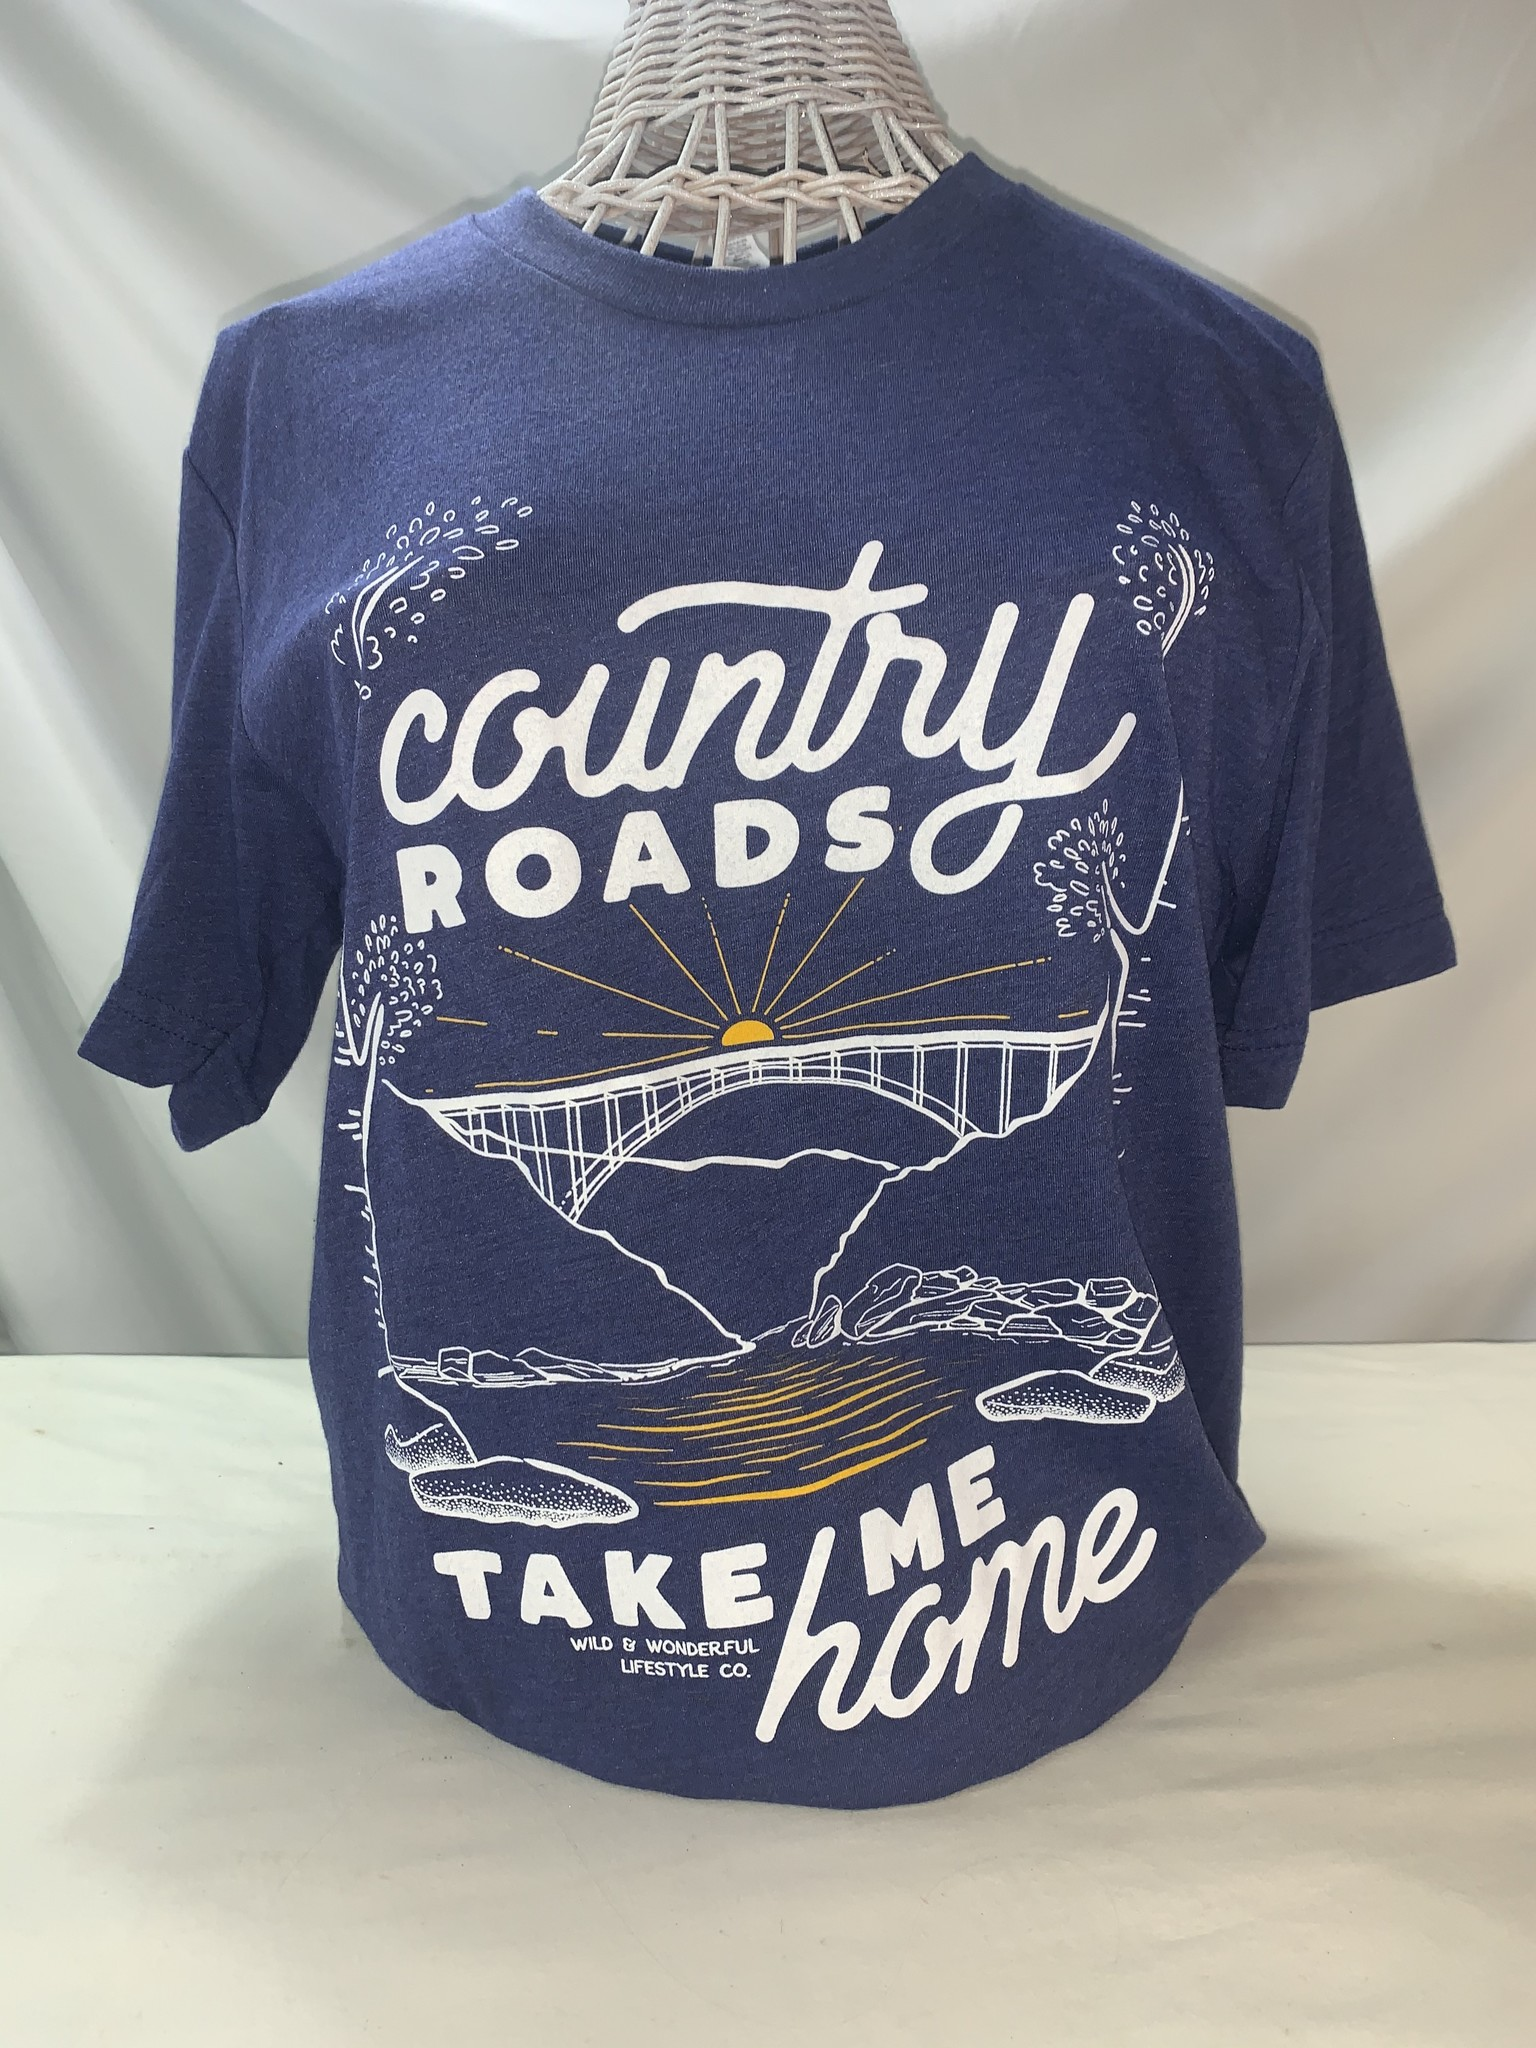 Wild & Wonderful Lifestyle Company WV Country Roads Tee Lg